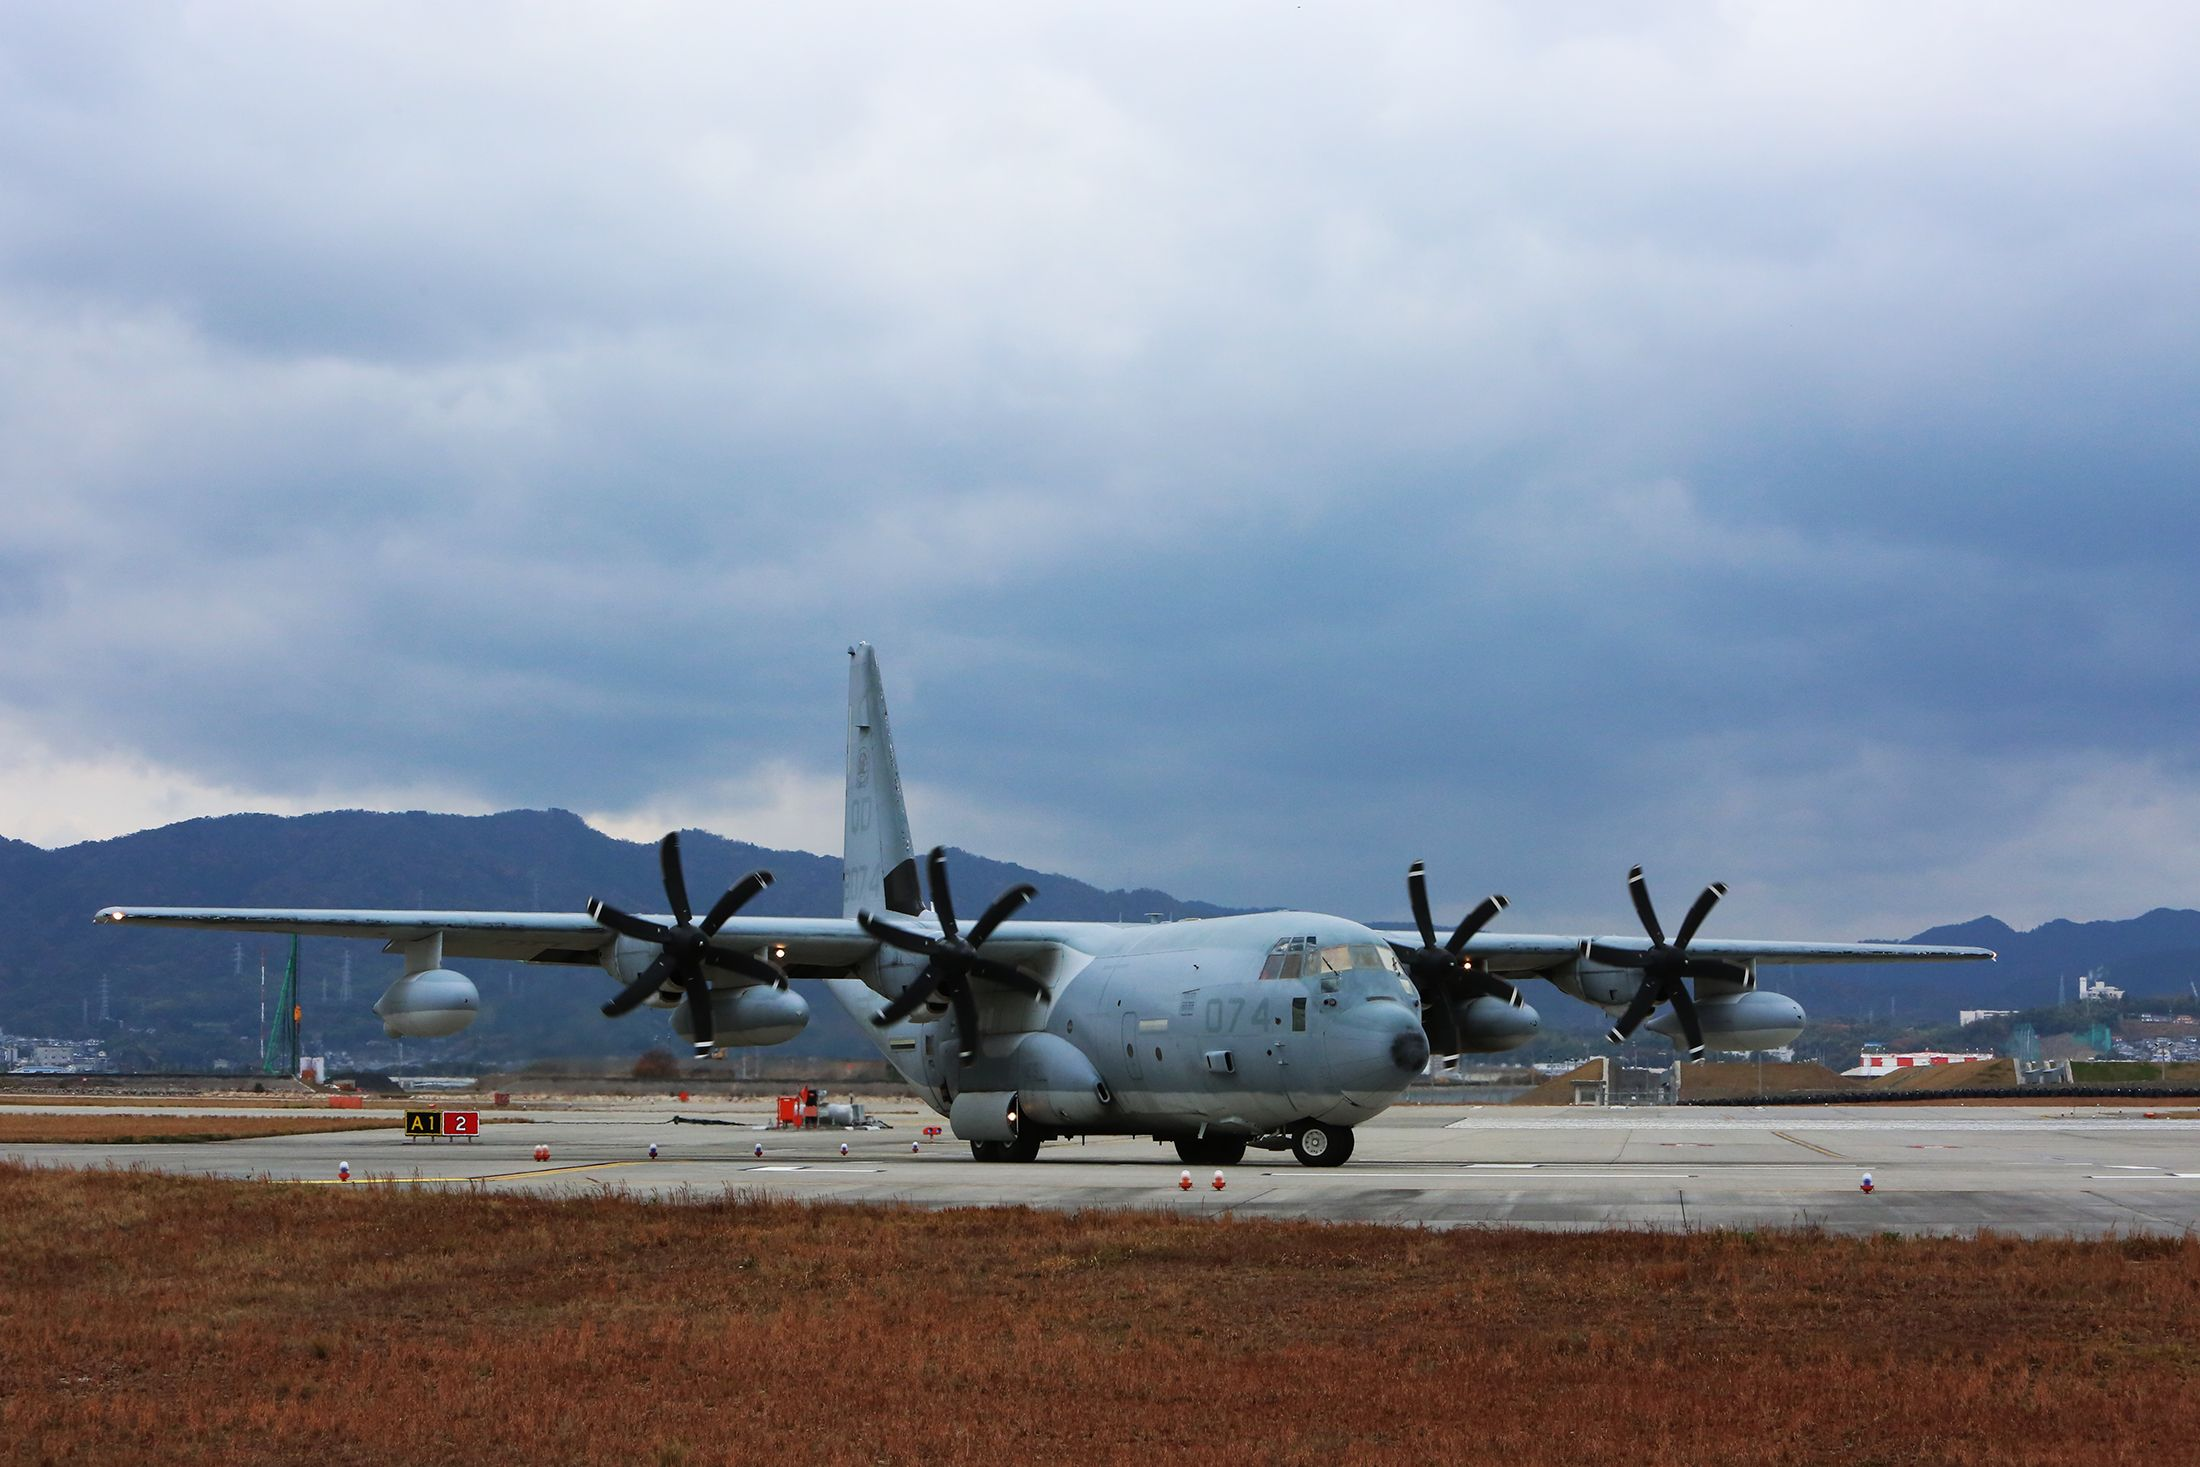 """MARINE CORPS AIR STATION IWAKUNI, Japan - A KC-130J Super Hercules with Marine Aerial Refueler Transport Squadron 152 taxies to the runway aboard Marine Corps Air Station Iwakuni, Japan, Dec. 1, 2014. The squadron, nicknamed """"Sumos"""", received the Chief of Naval Operations Aviation Safety Award for 2013 due to amassing more than 7,700 mishap-free flight hours last year."""